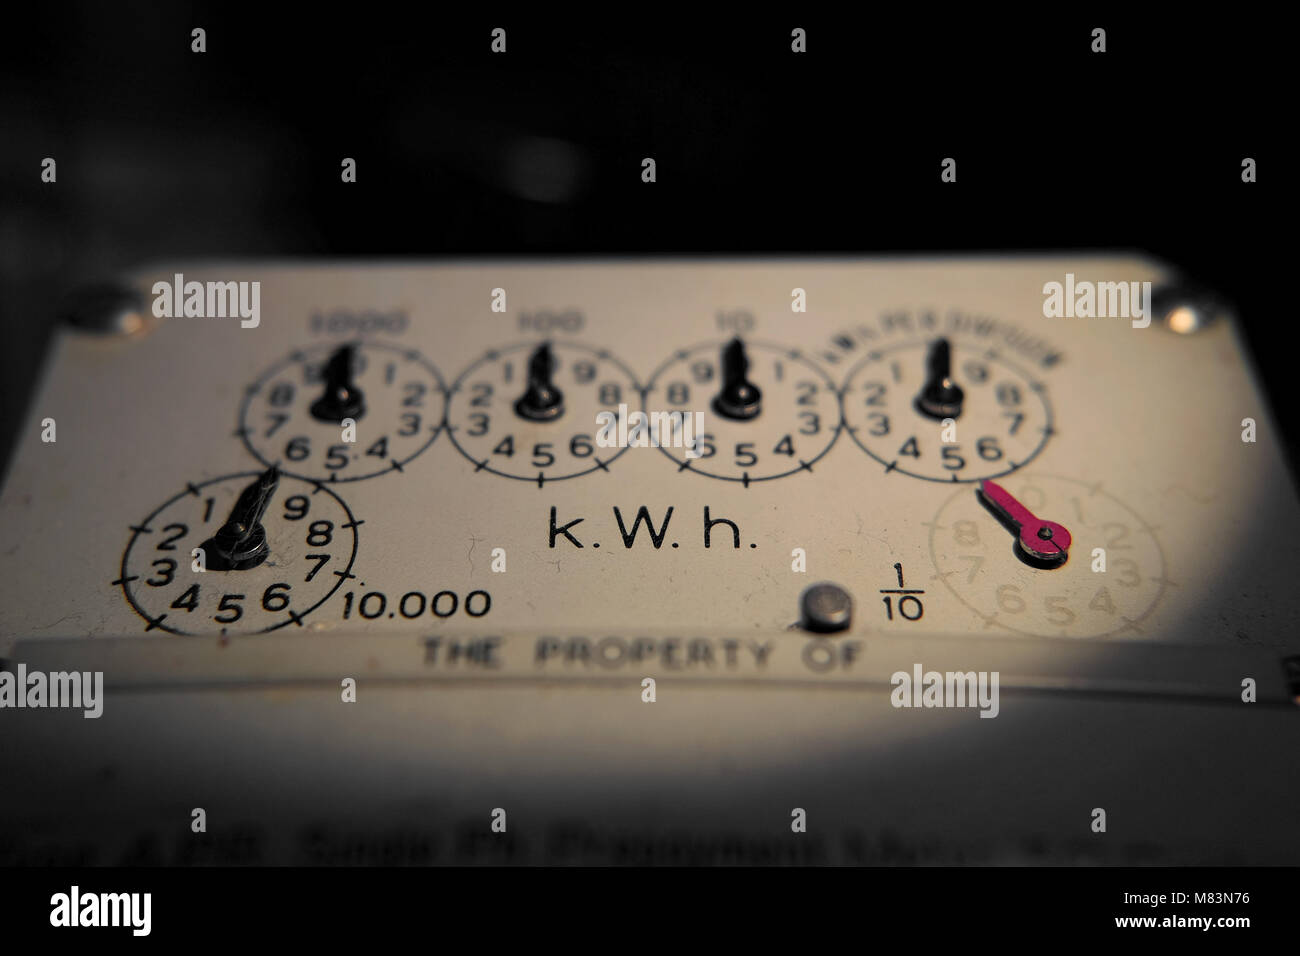 Analogue Electricity meter - Stock Image